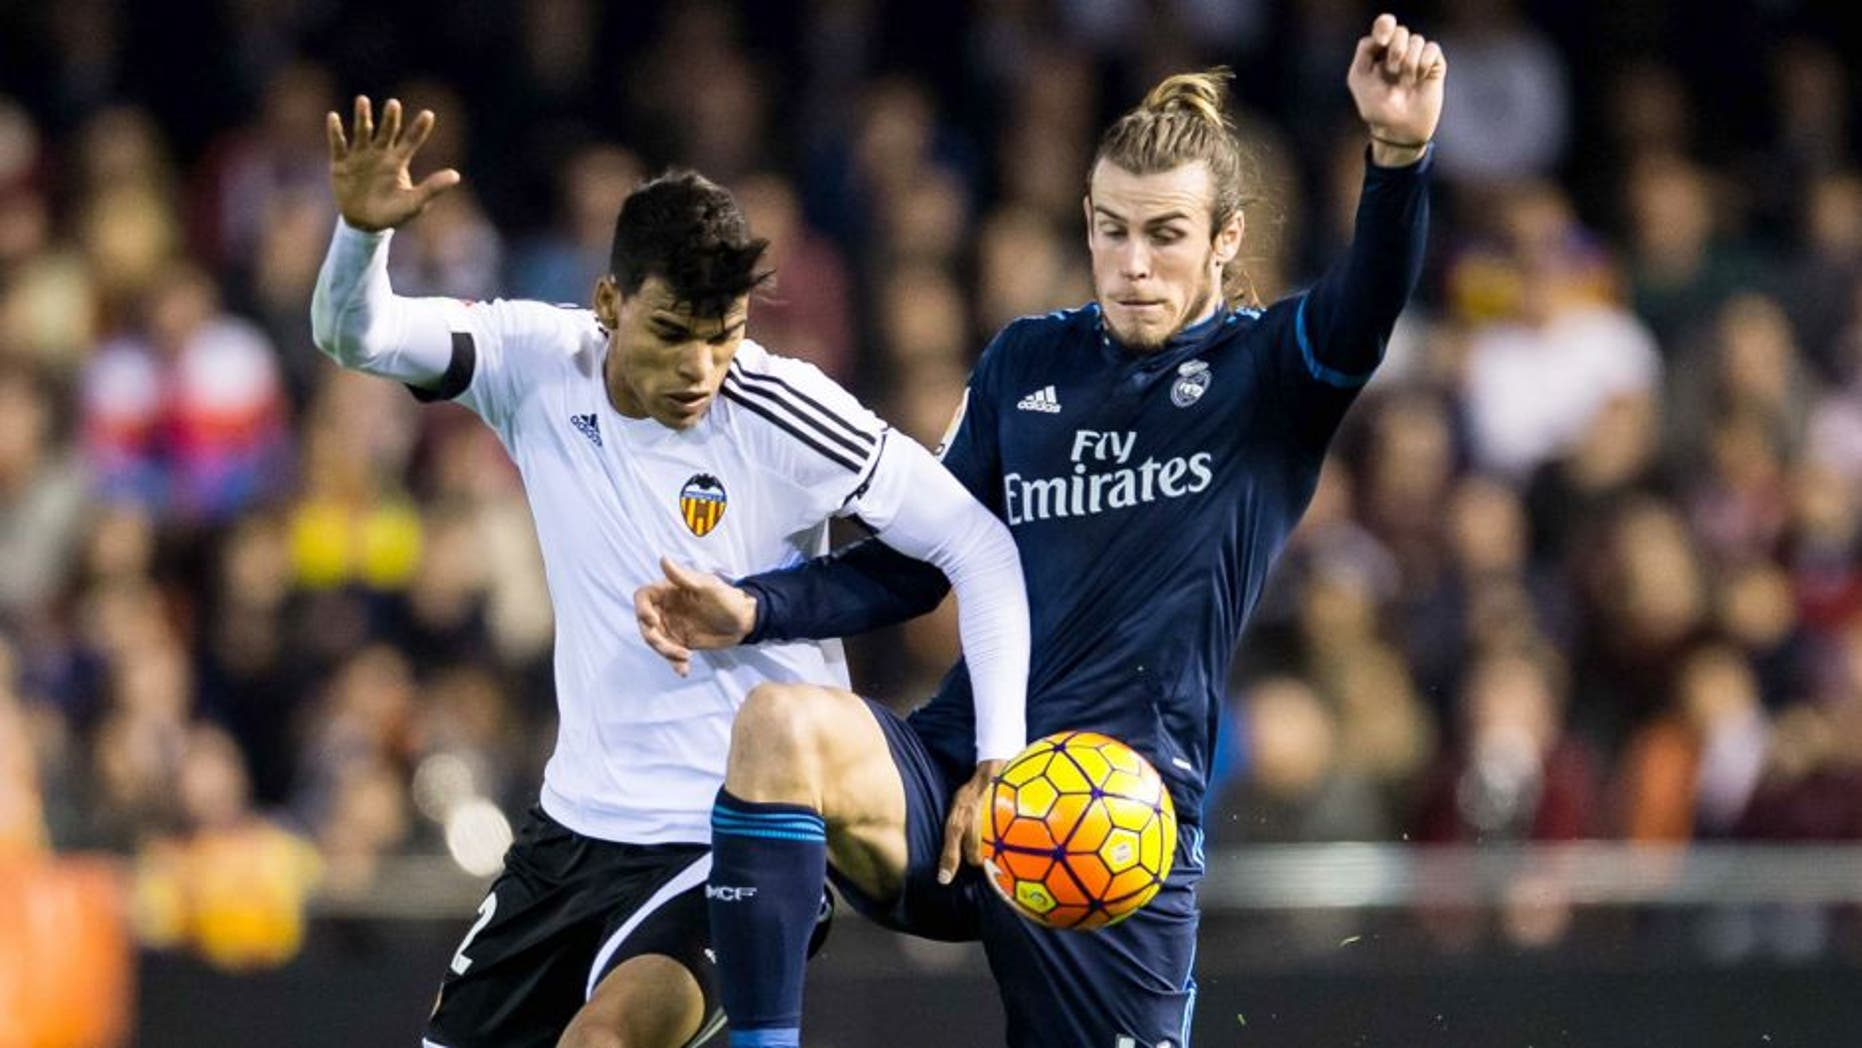 VALENCIA, SPAIN - JANUARY 03: Danilo of Valencia CF (L) competes for the ball with Gareth Bale of Real Madrid CF (R) during the Valencia CF vs Real Madrid CF as part of the Liga BBVA 2015-2016 at Estadi de Mestalla on January 3, 2016 in Valencia, Spain. (Photo by Aitor Colomer/Power Sport Images/Getty Images)